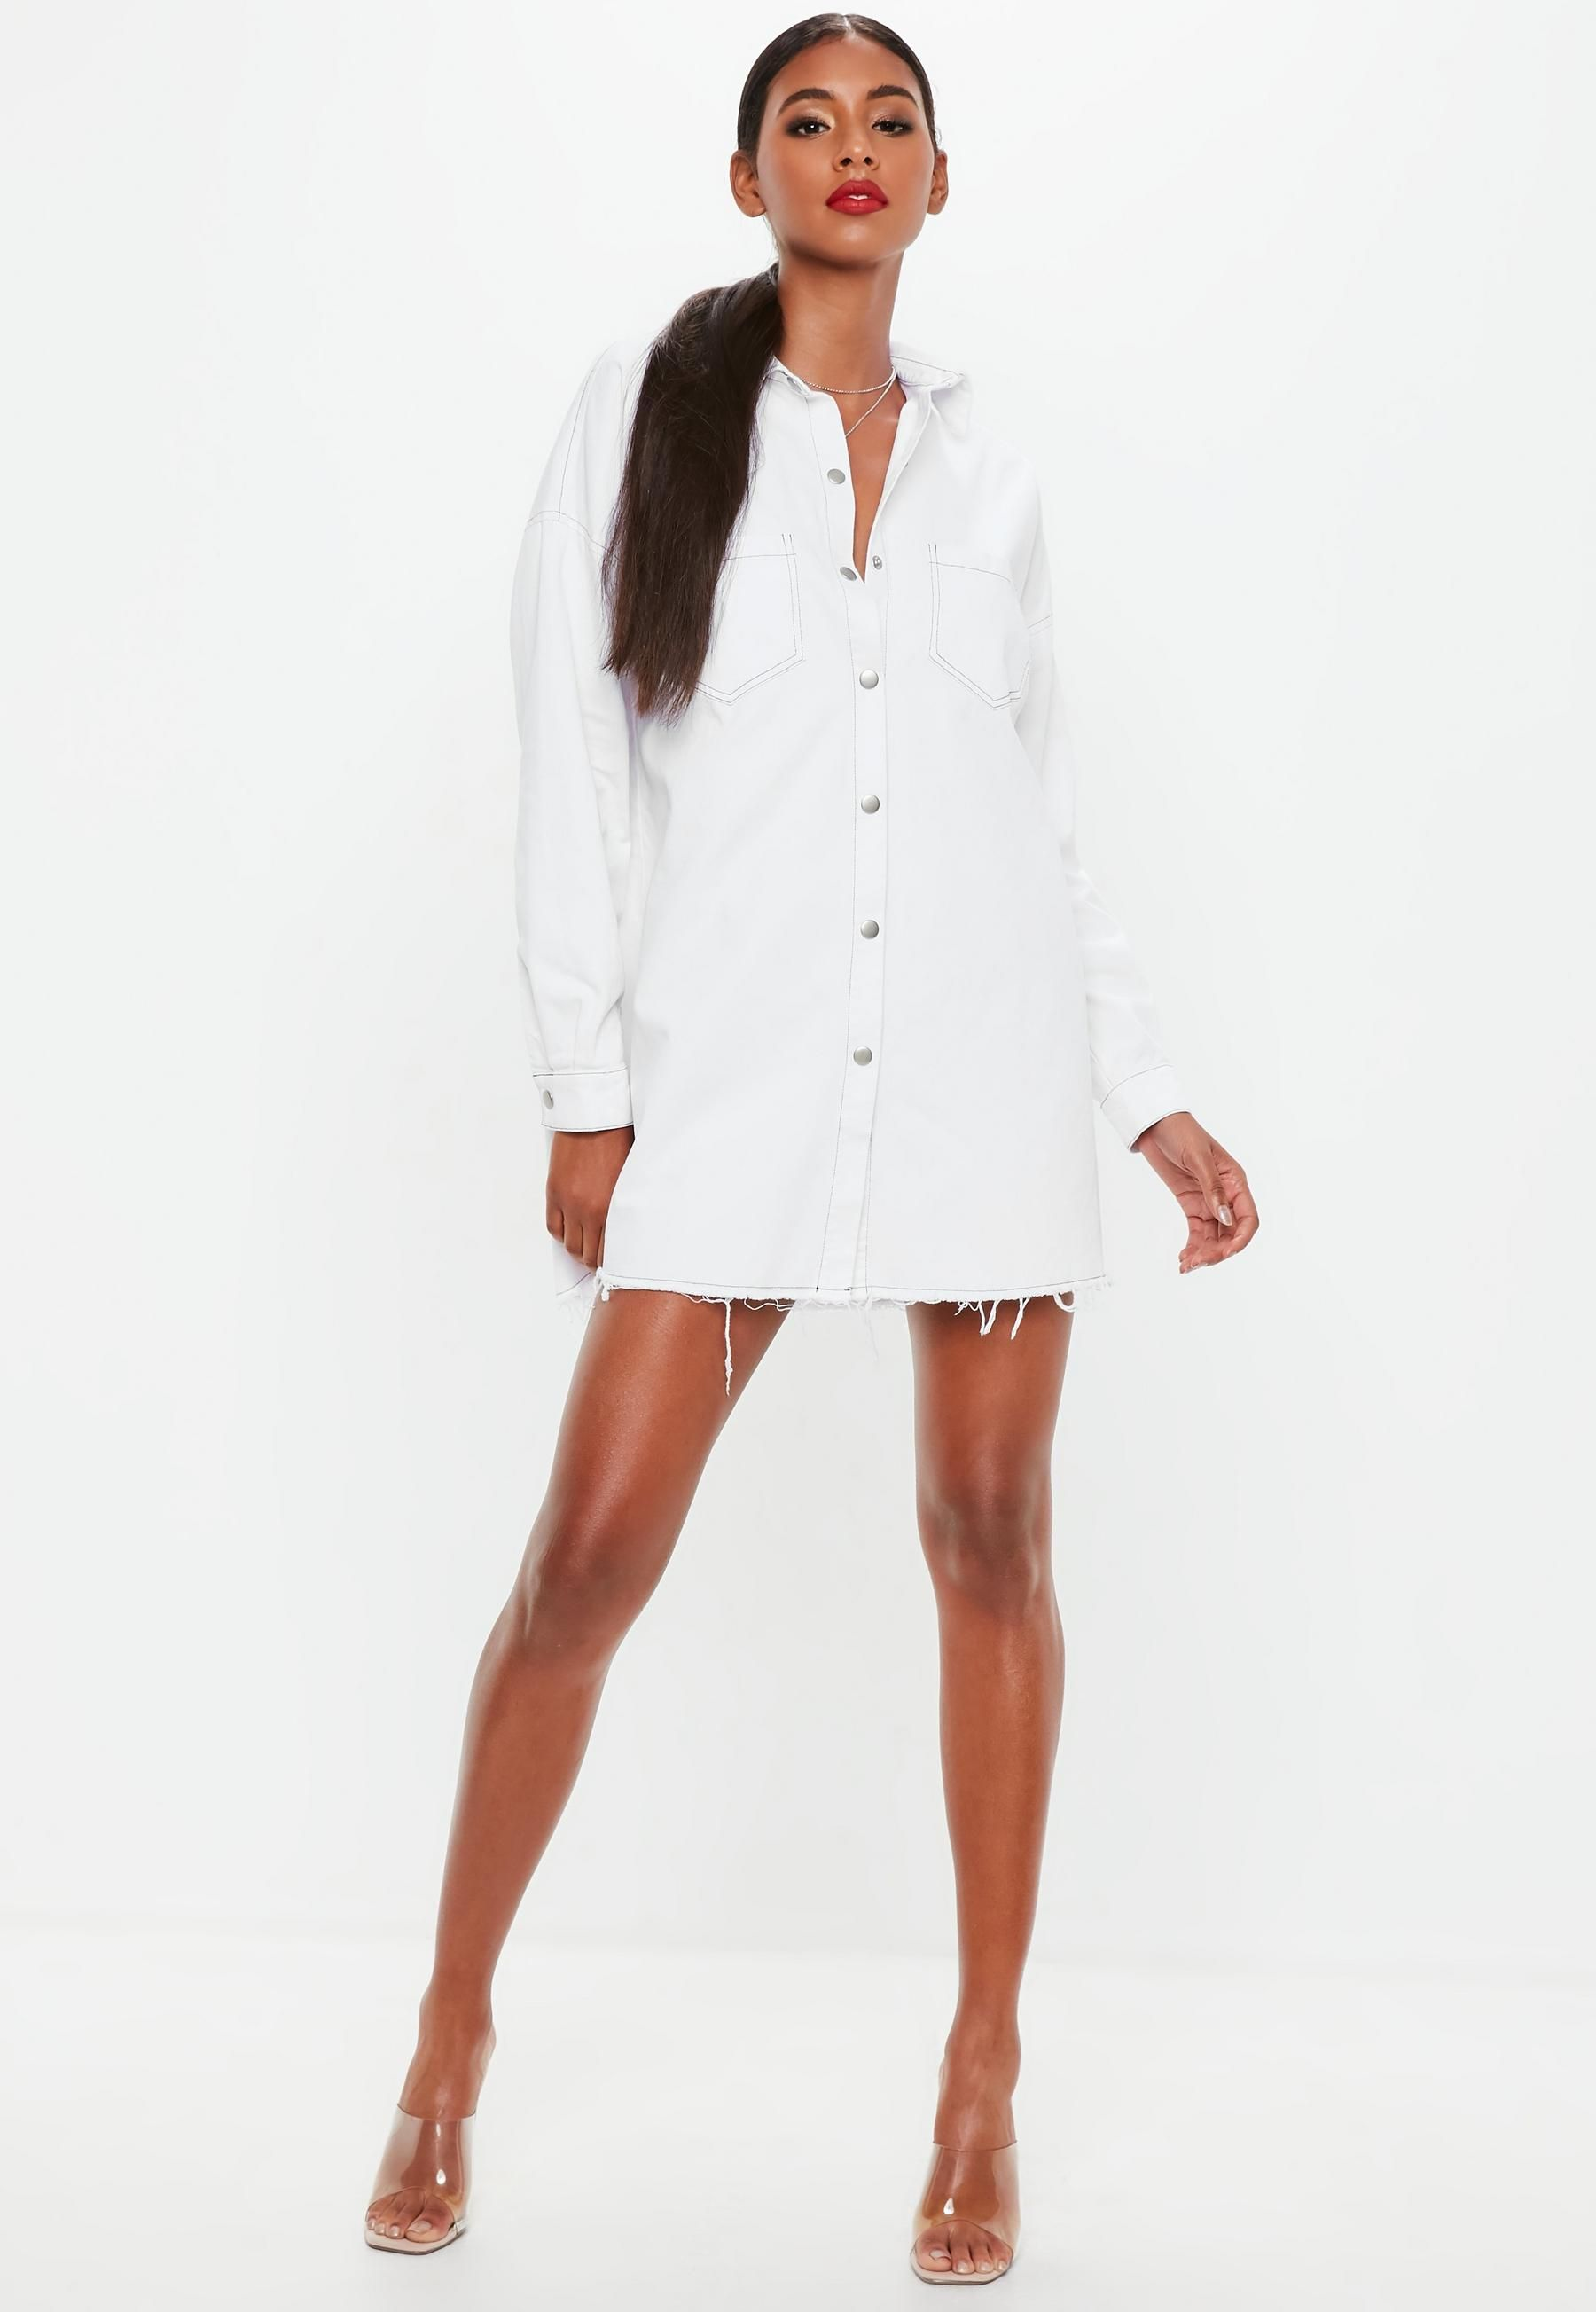 c58359b6f6 Women s Winter Clothes and Fashion. White Contrast Stitch Utility Shirt  Dress